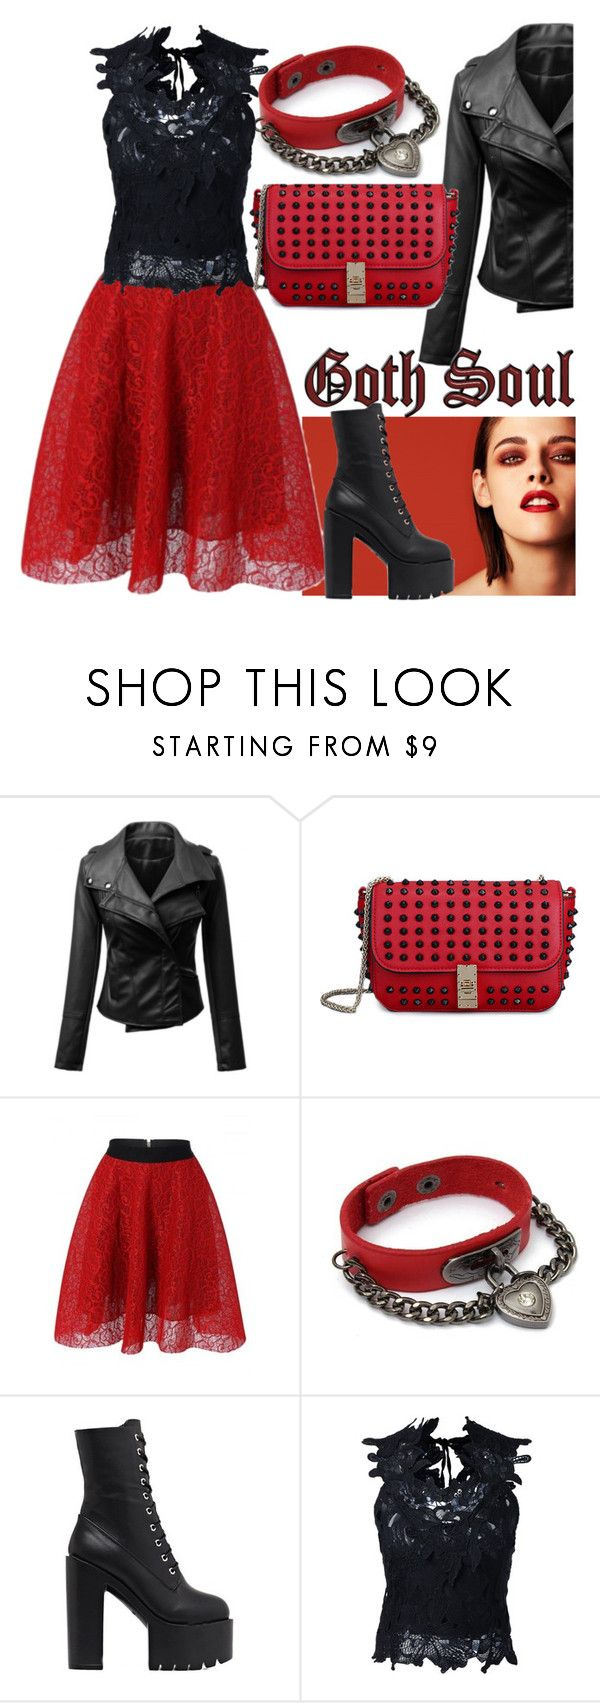 """""""Goth/punk style"""" by srebrnisnijeg ❤ liked on Polyvore featuring Chanel"""